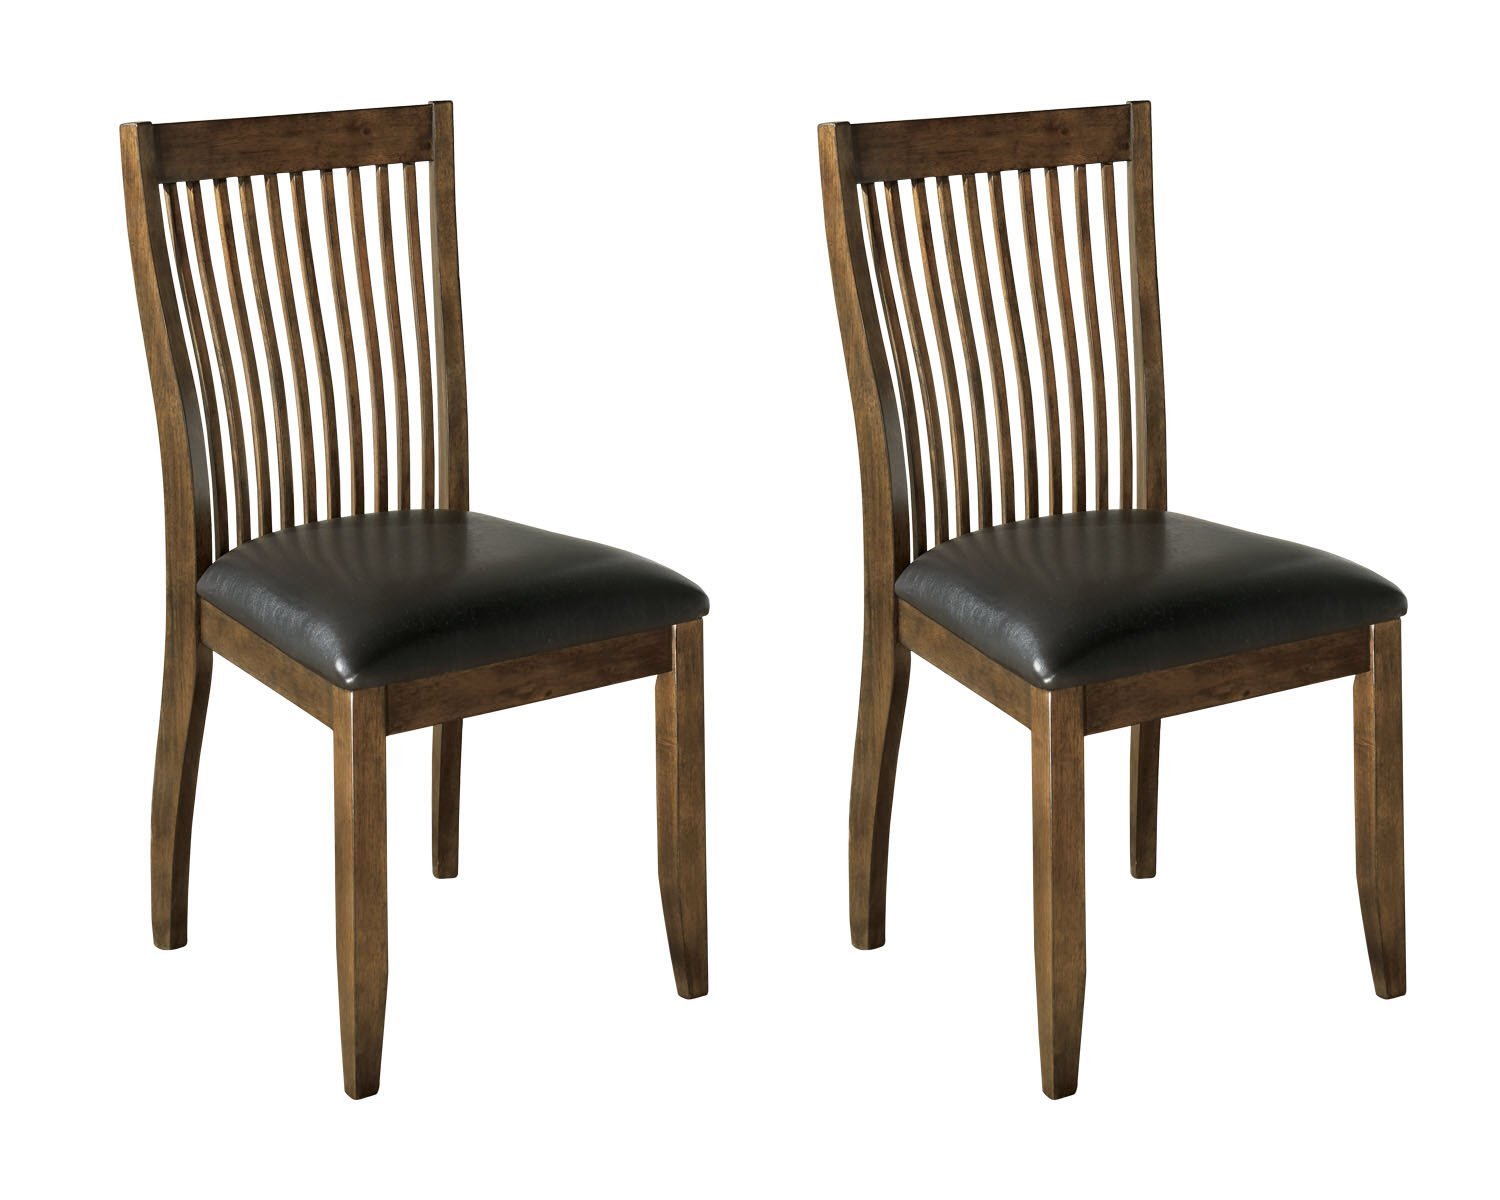 Ashley Furniture Signature Design   Stuman Dining Side Chair   Comb Back    Set Of 2   Brown Base And Black Upolstered Seat